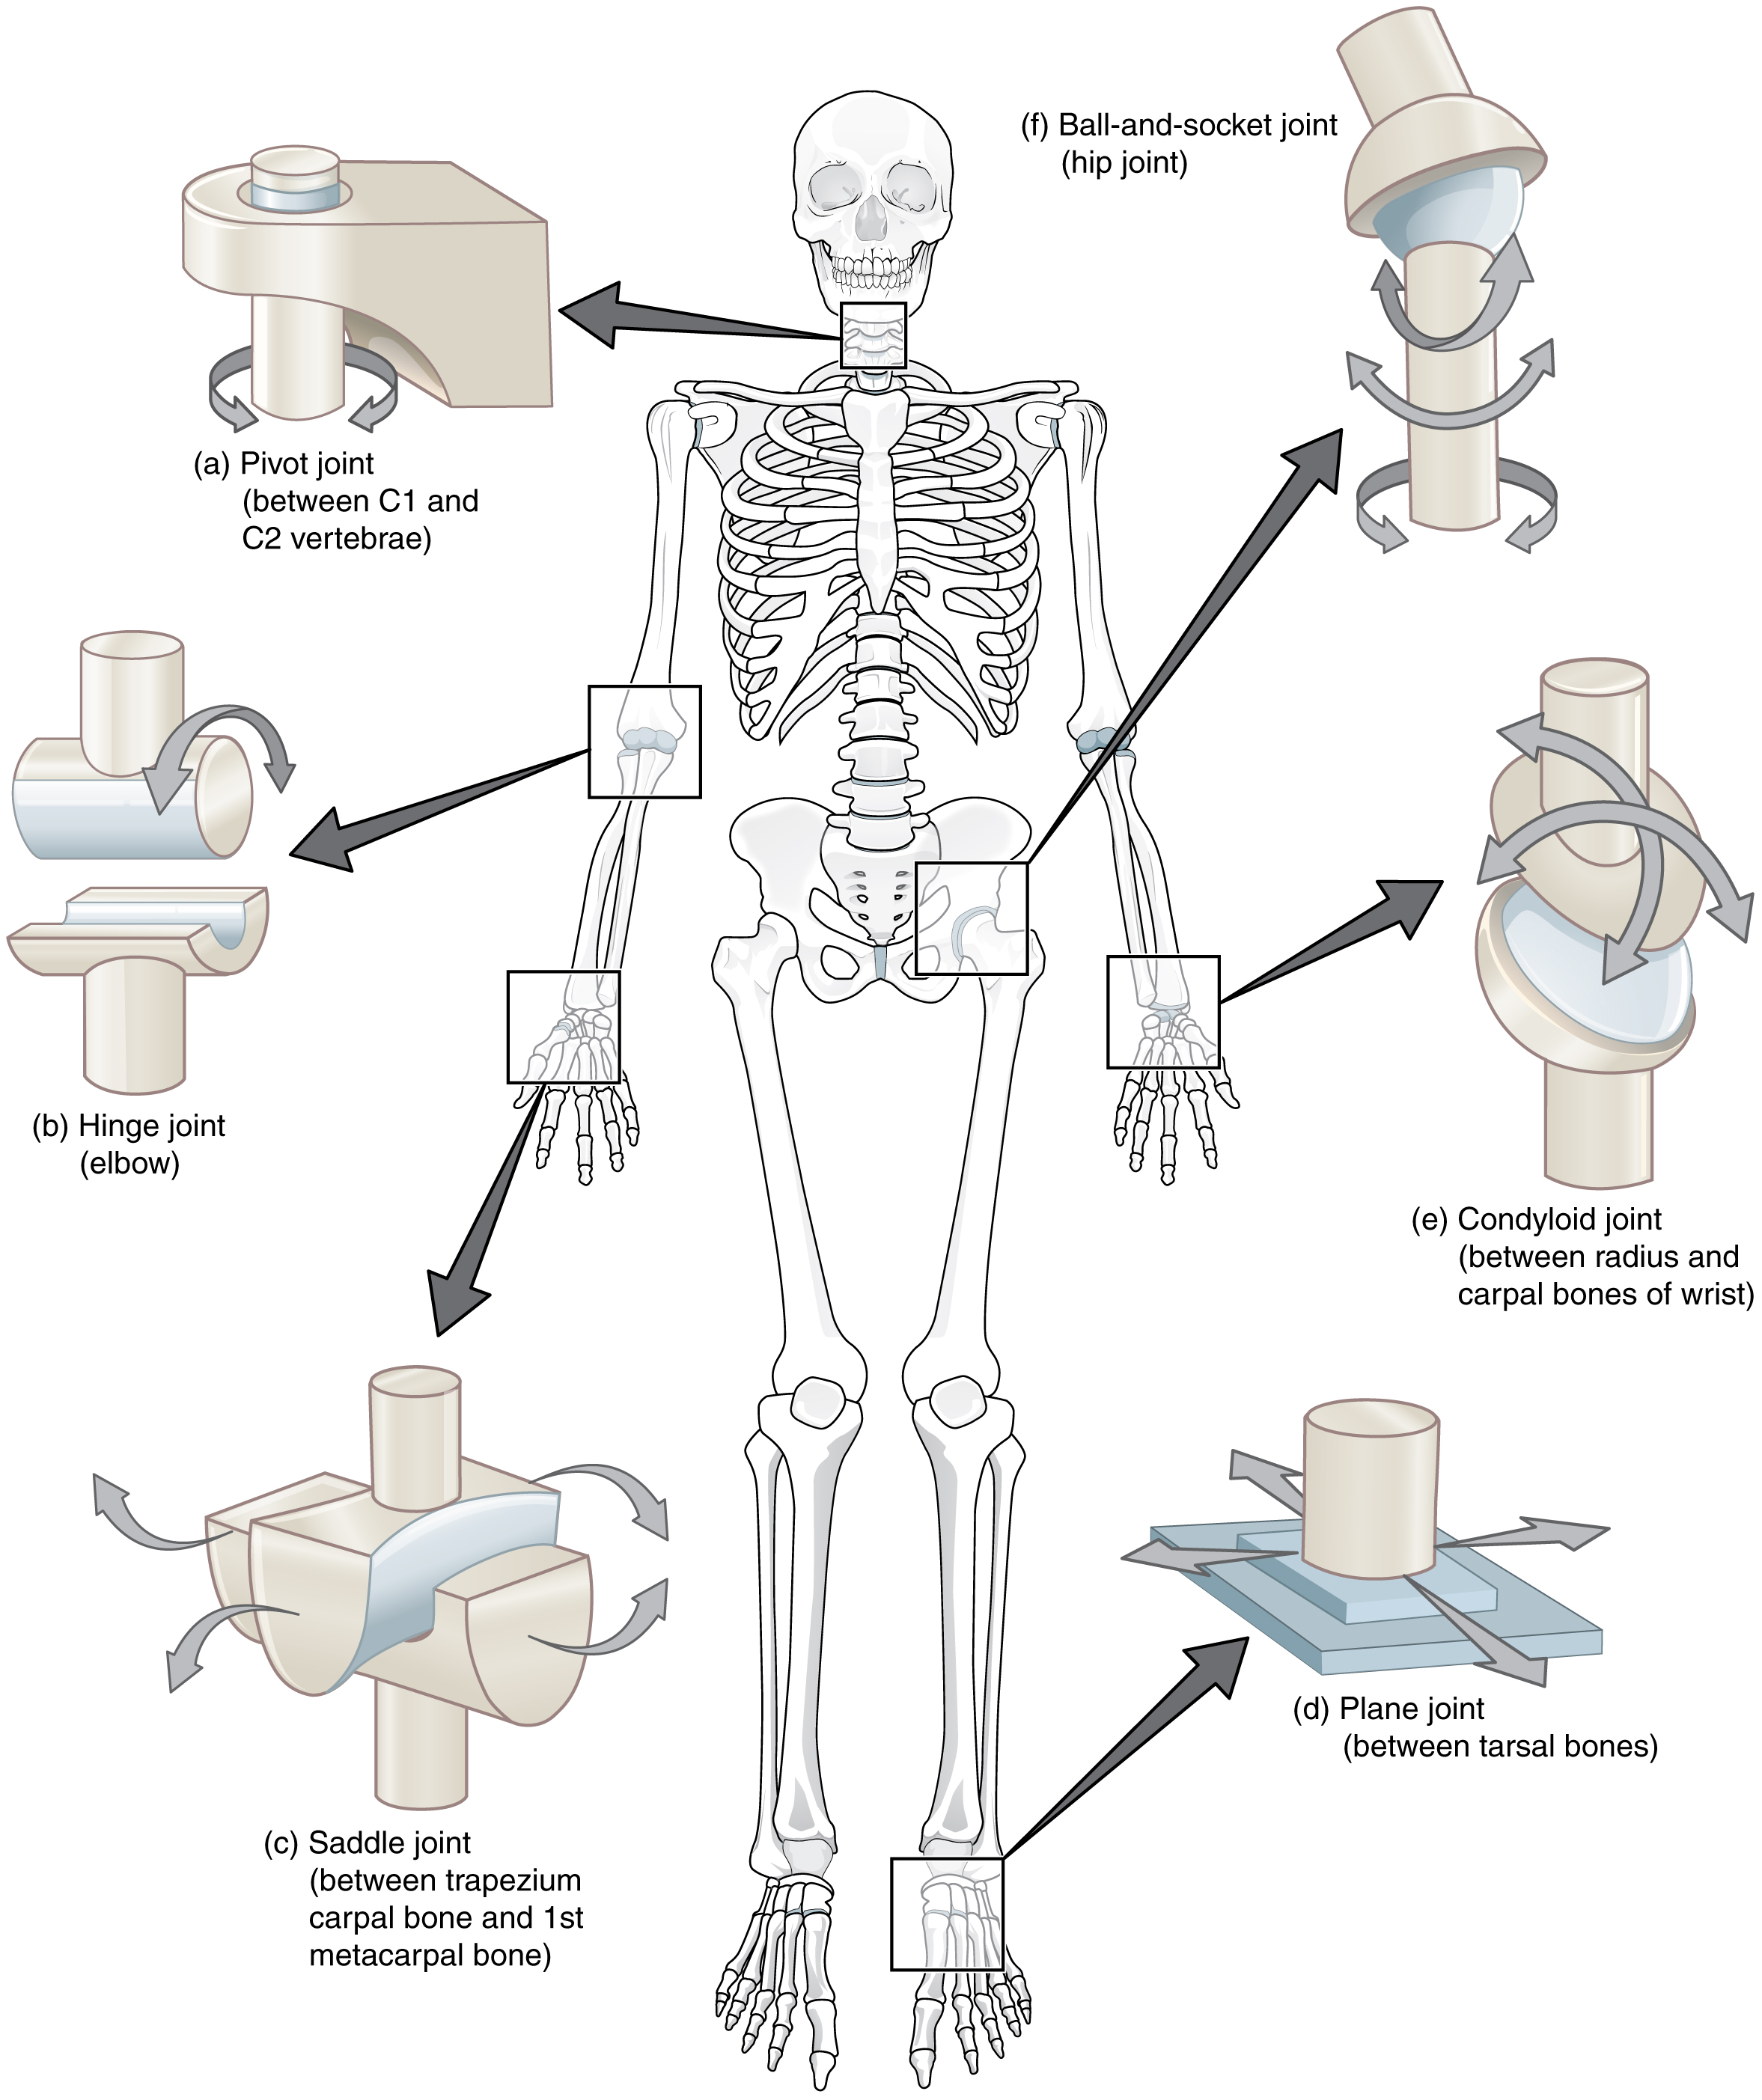 This composite image shows the different types of synovial joints in the body. In the center of the figure is a skeleton, and call outs from each joint show their names and locations.